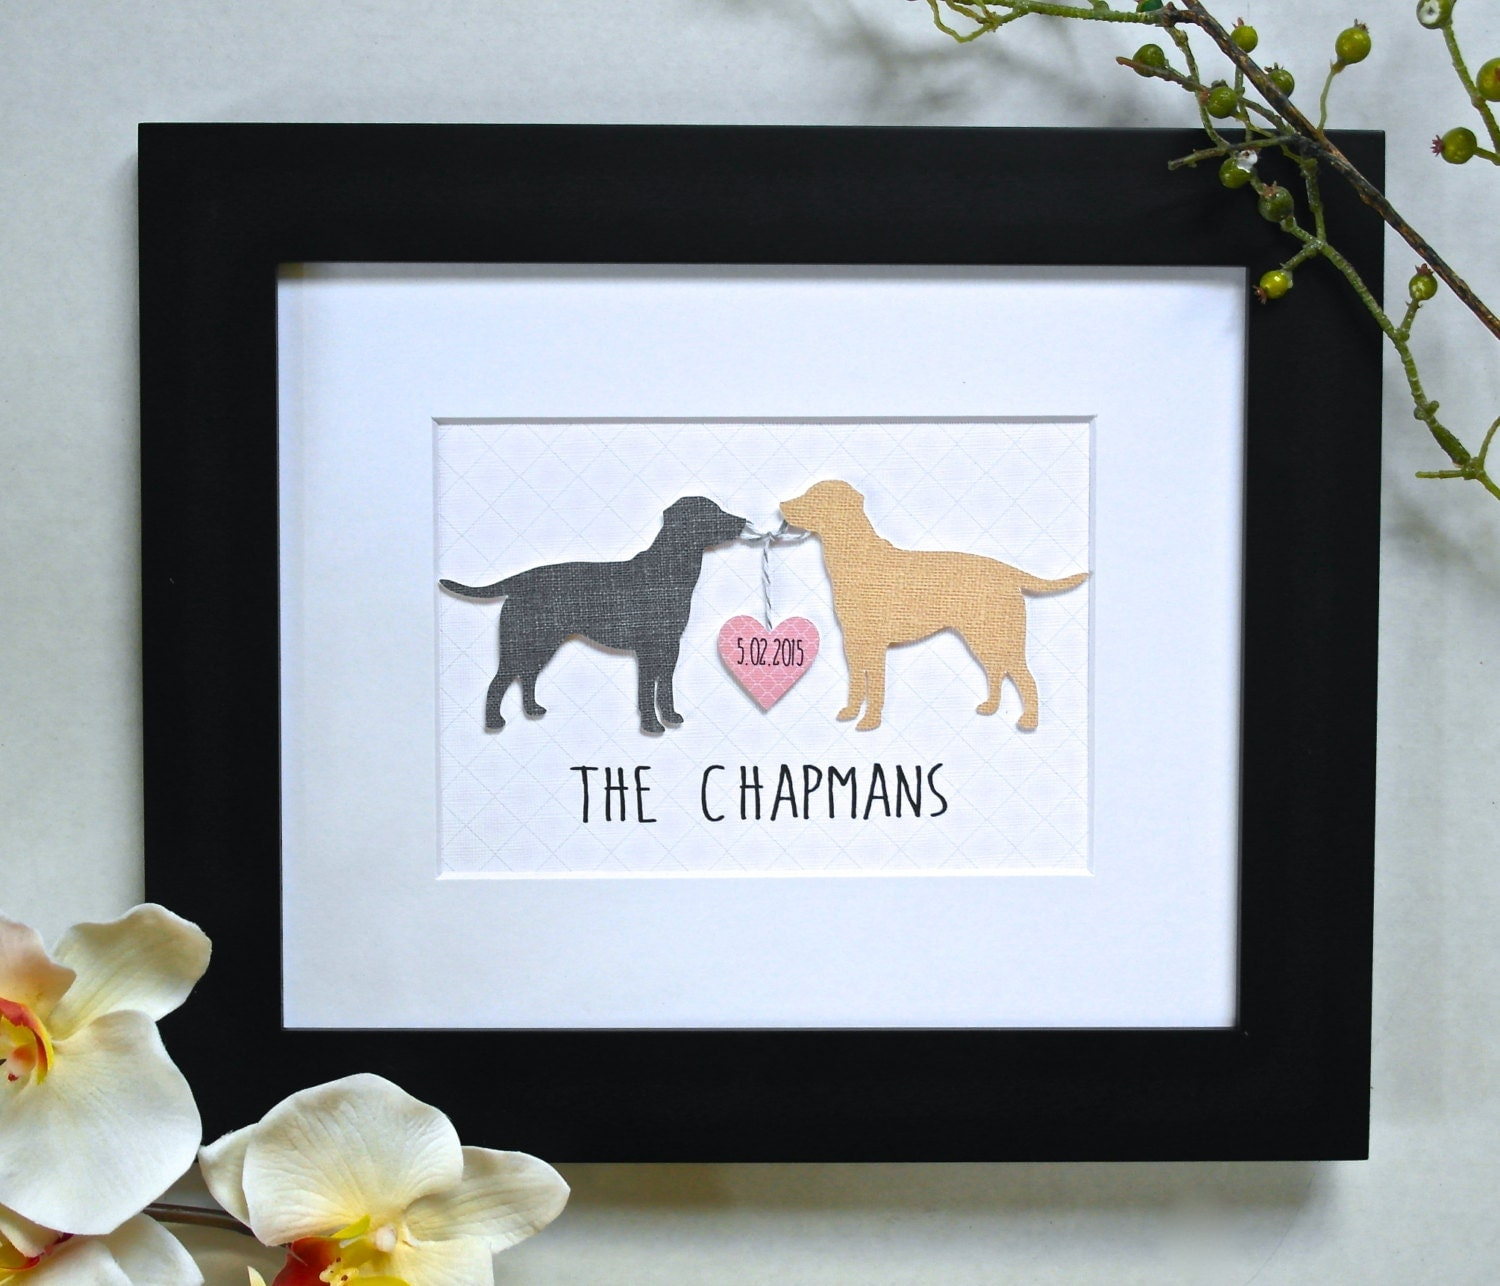 Wedding Gifts For Art Lovers : 3D CUSTOM DOG Art Labrador Art Unique Wedding Gift